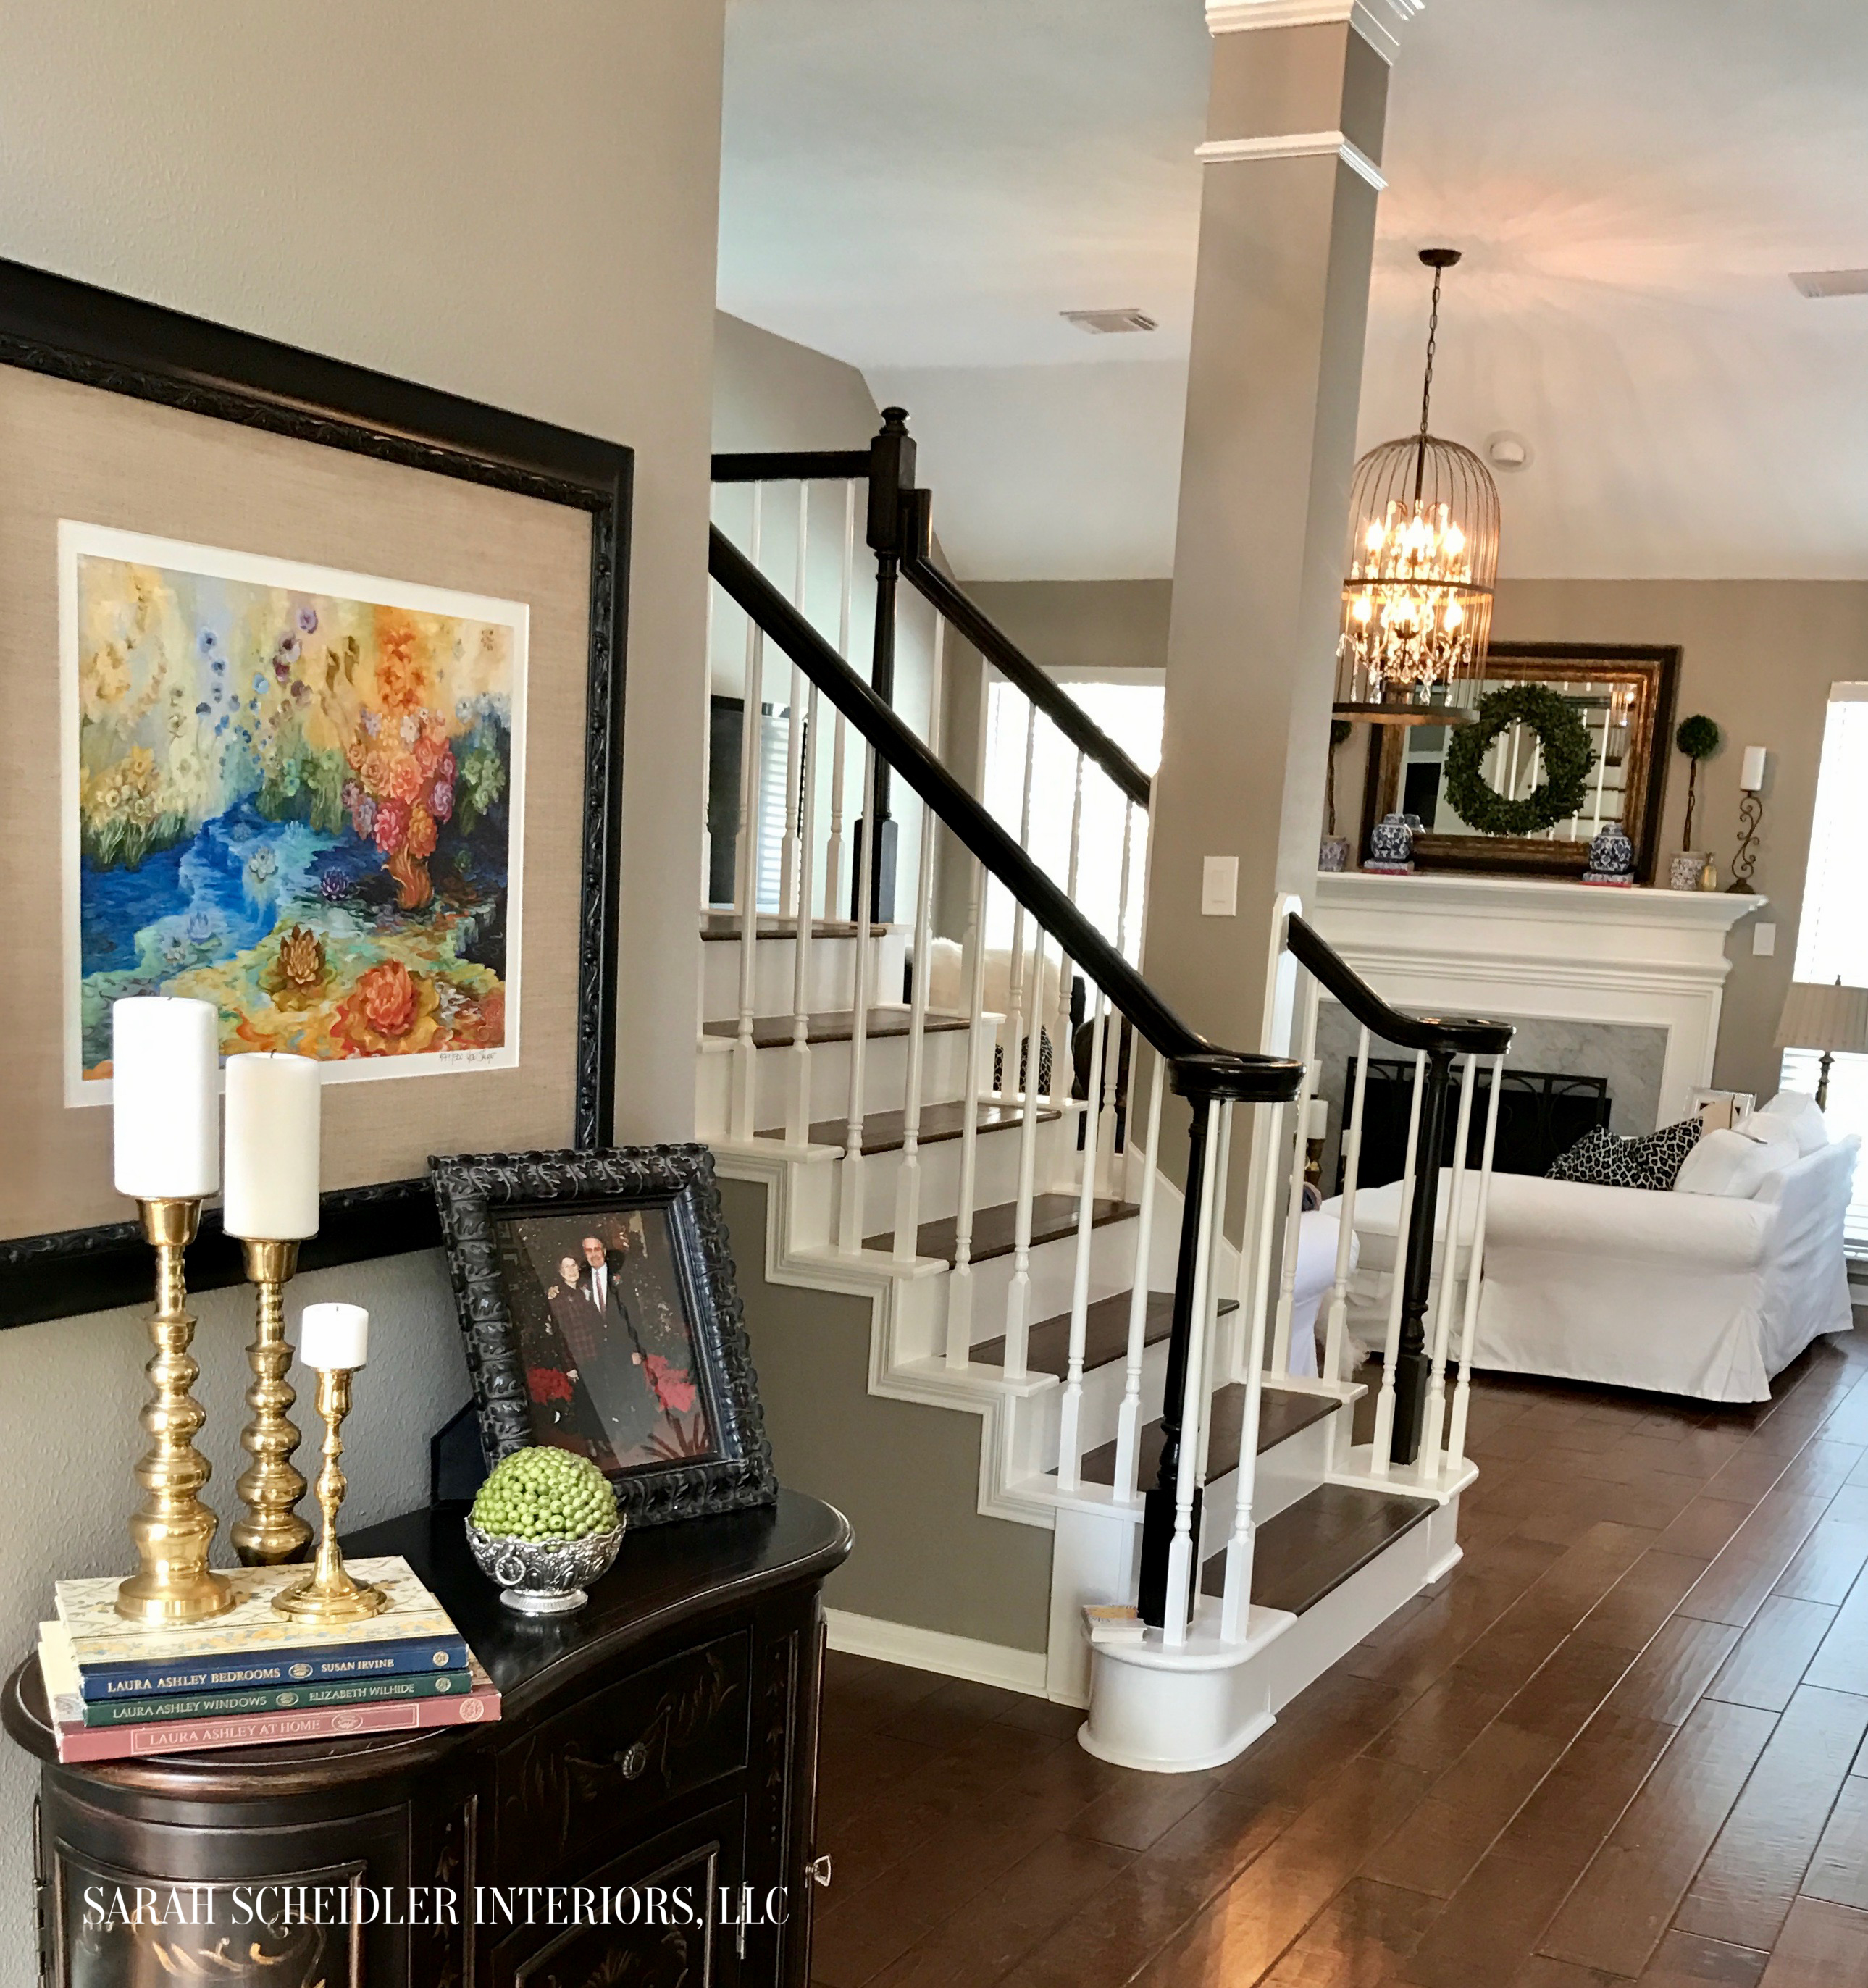 Open-Concept Entryway with Aged Brass Accents and Colorful Art Looking into White Living Room with Blue Accents and Birdcage Crystal Chandelier